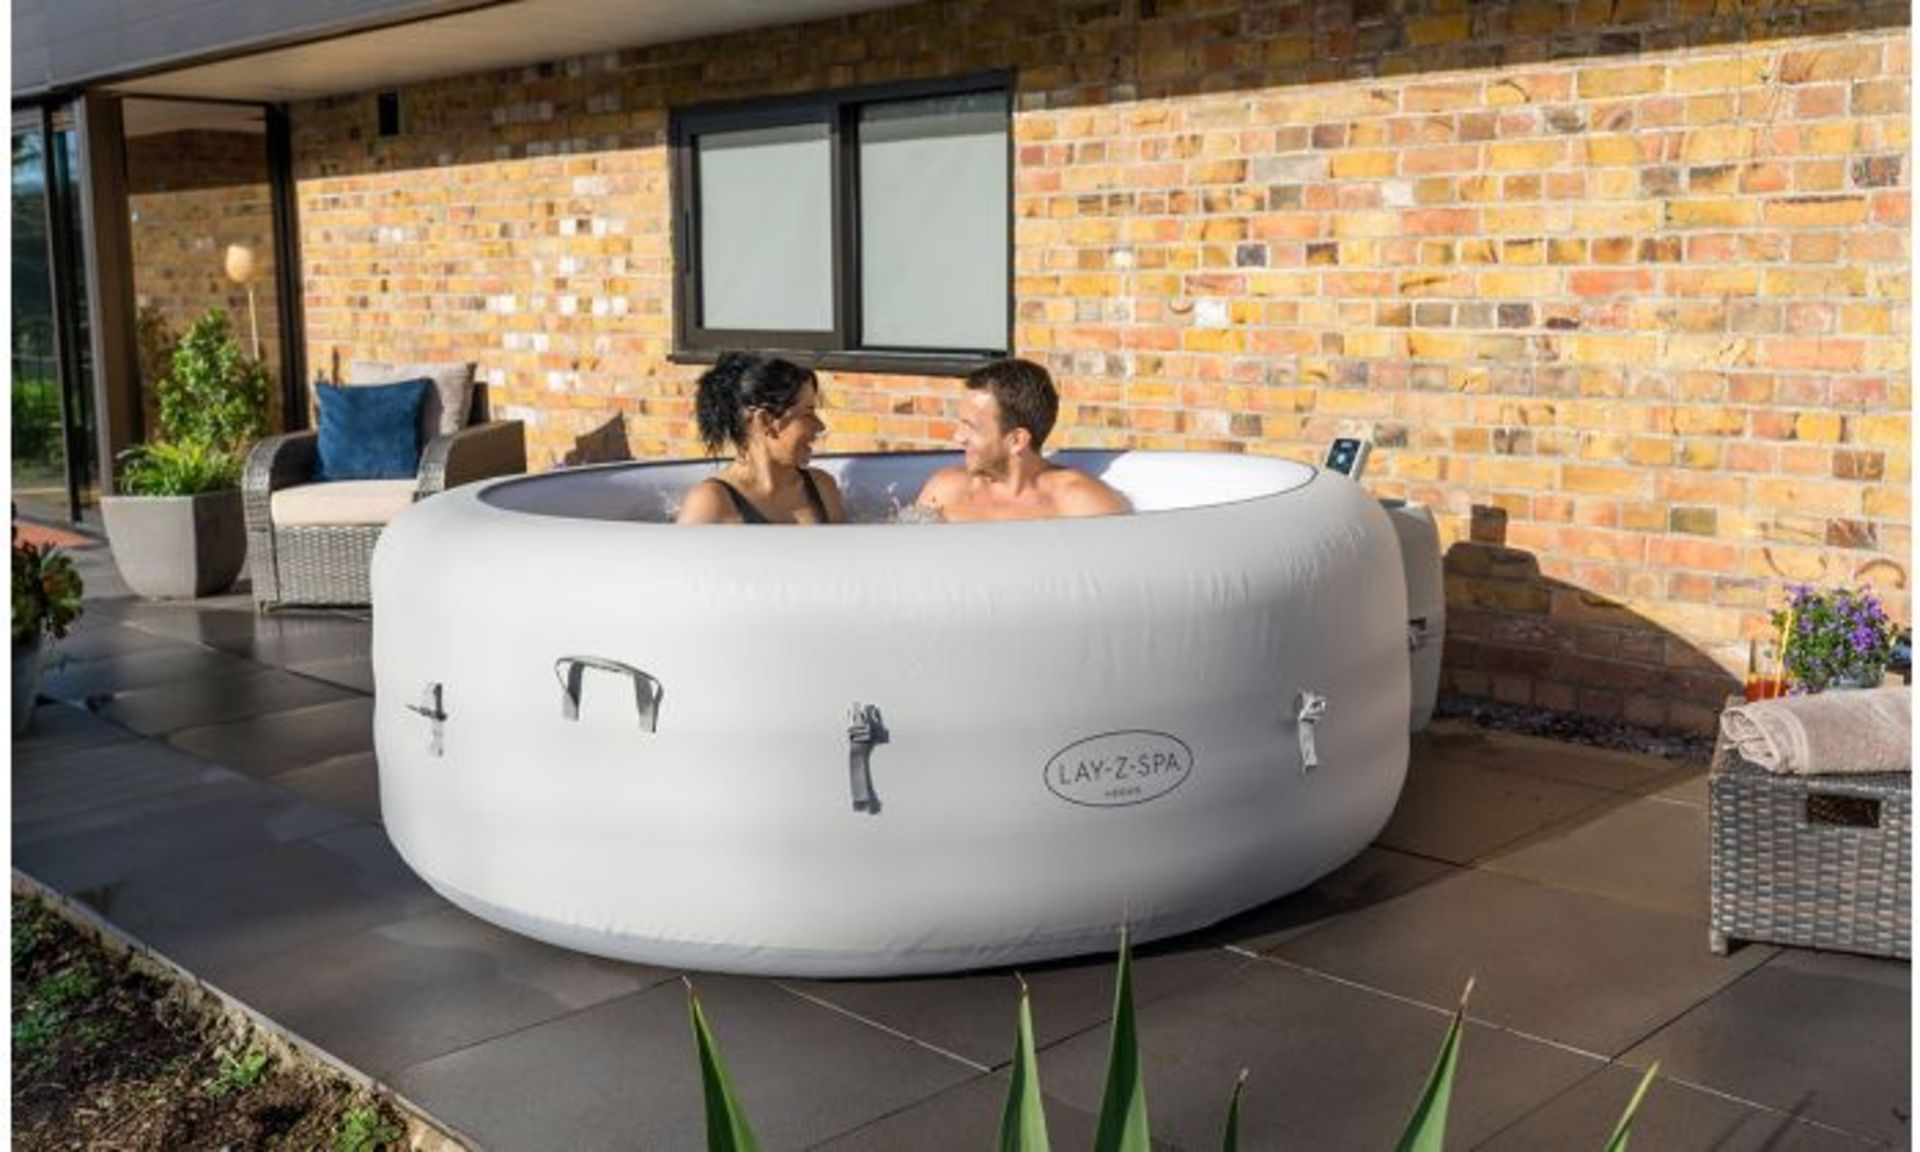 (2J) 1x Bestway Lay-Z-Spa Vegas Portable Hot Tub. RRP £599.00. (Lot Comes With Pump, Main Body, Inf